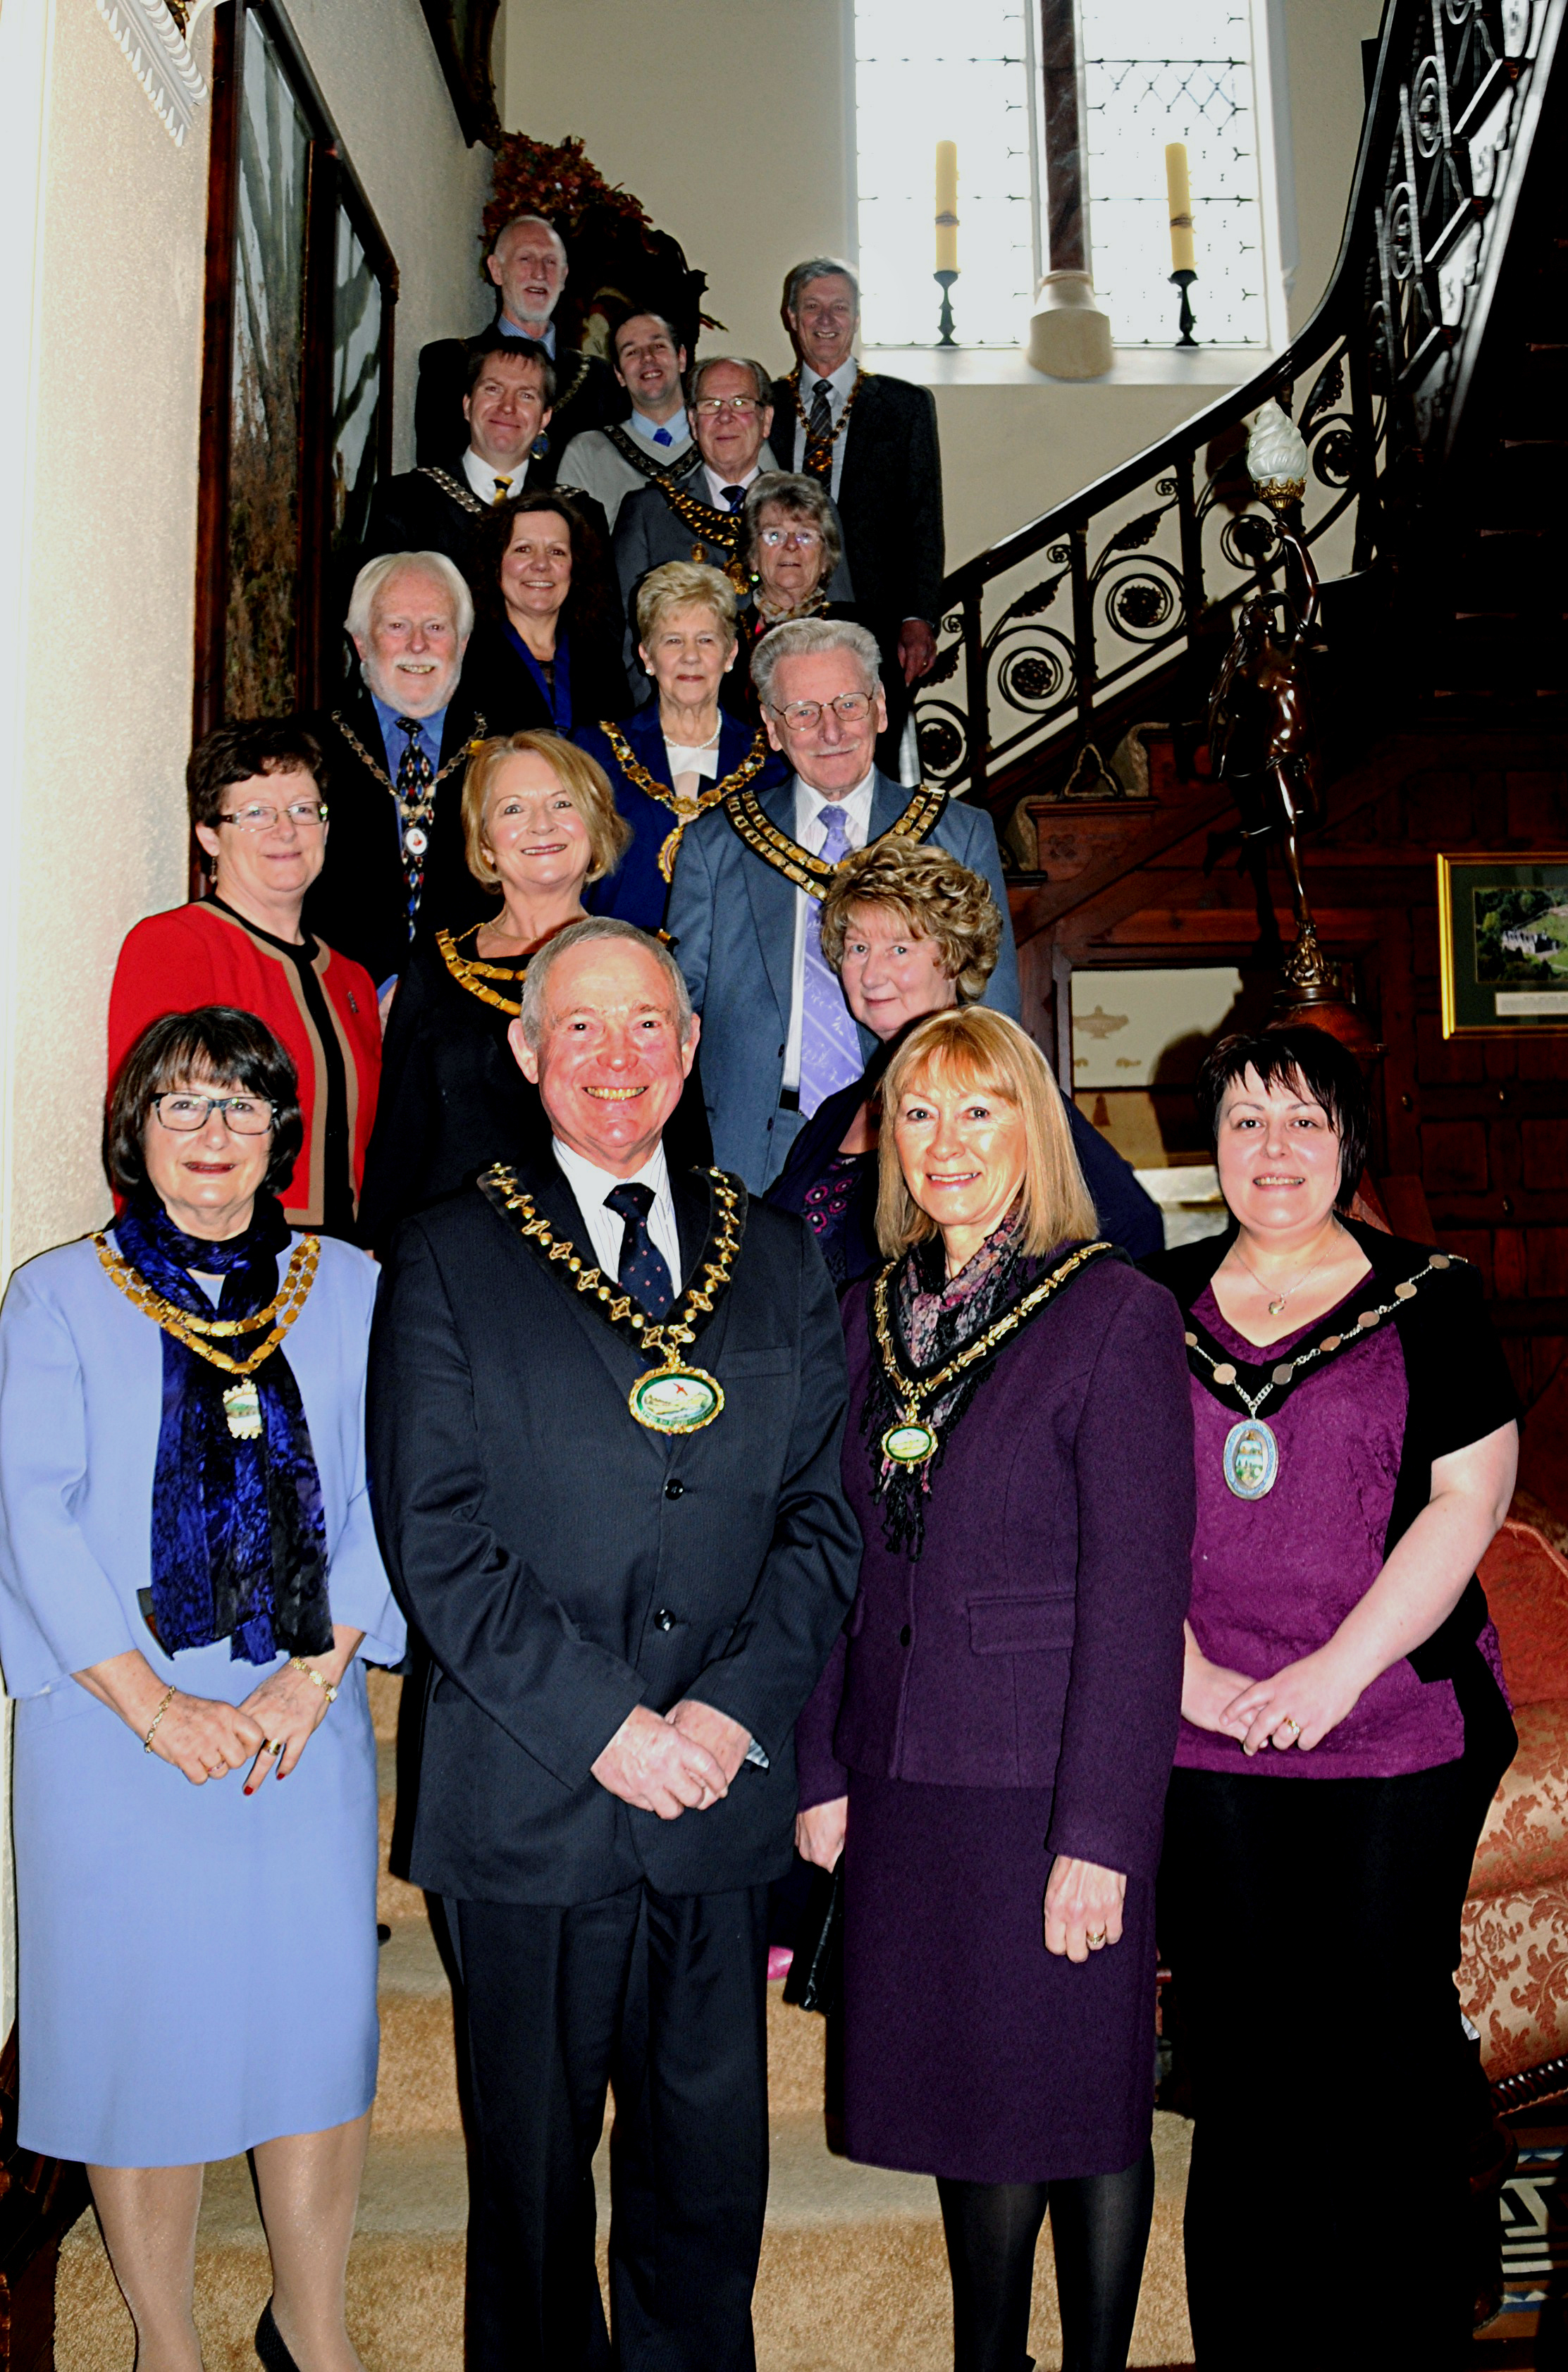 The chairman of Powys County Councillor John Brunt and his wife are pictured with the mayors at the reception. Photo by Brights Studi